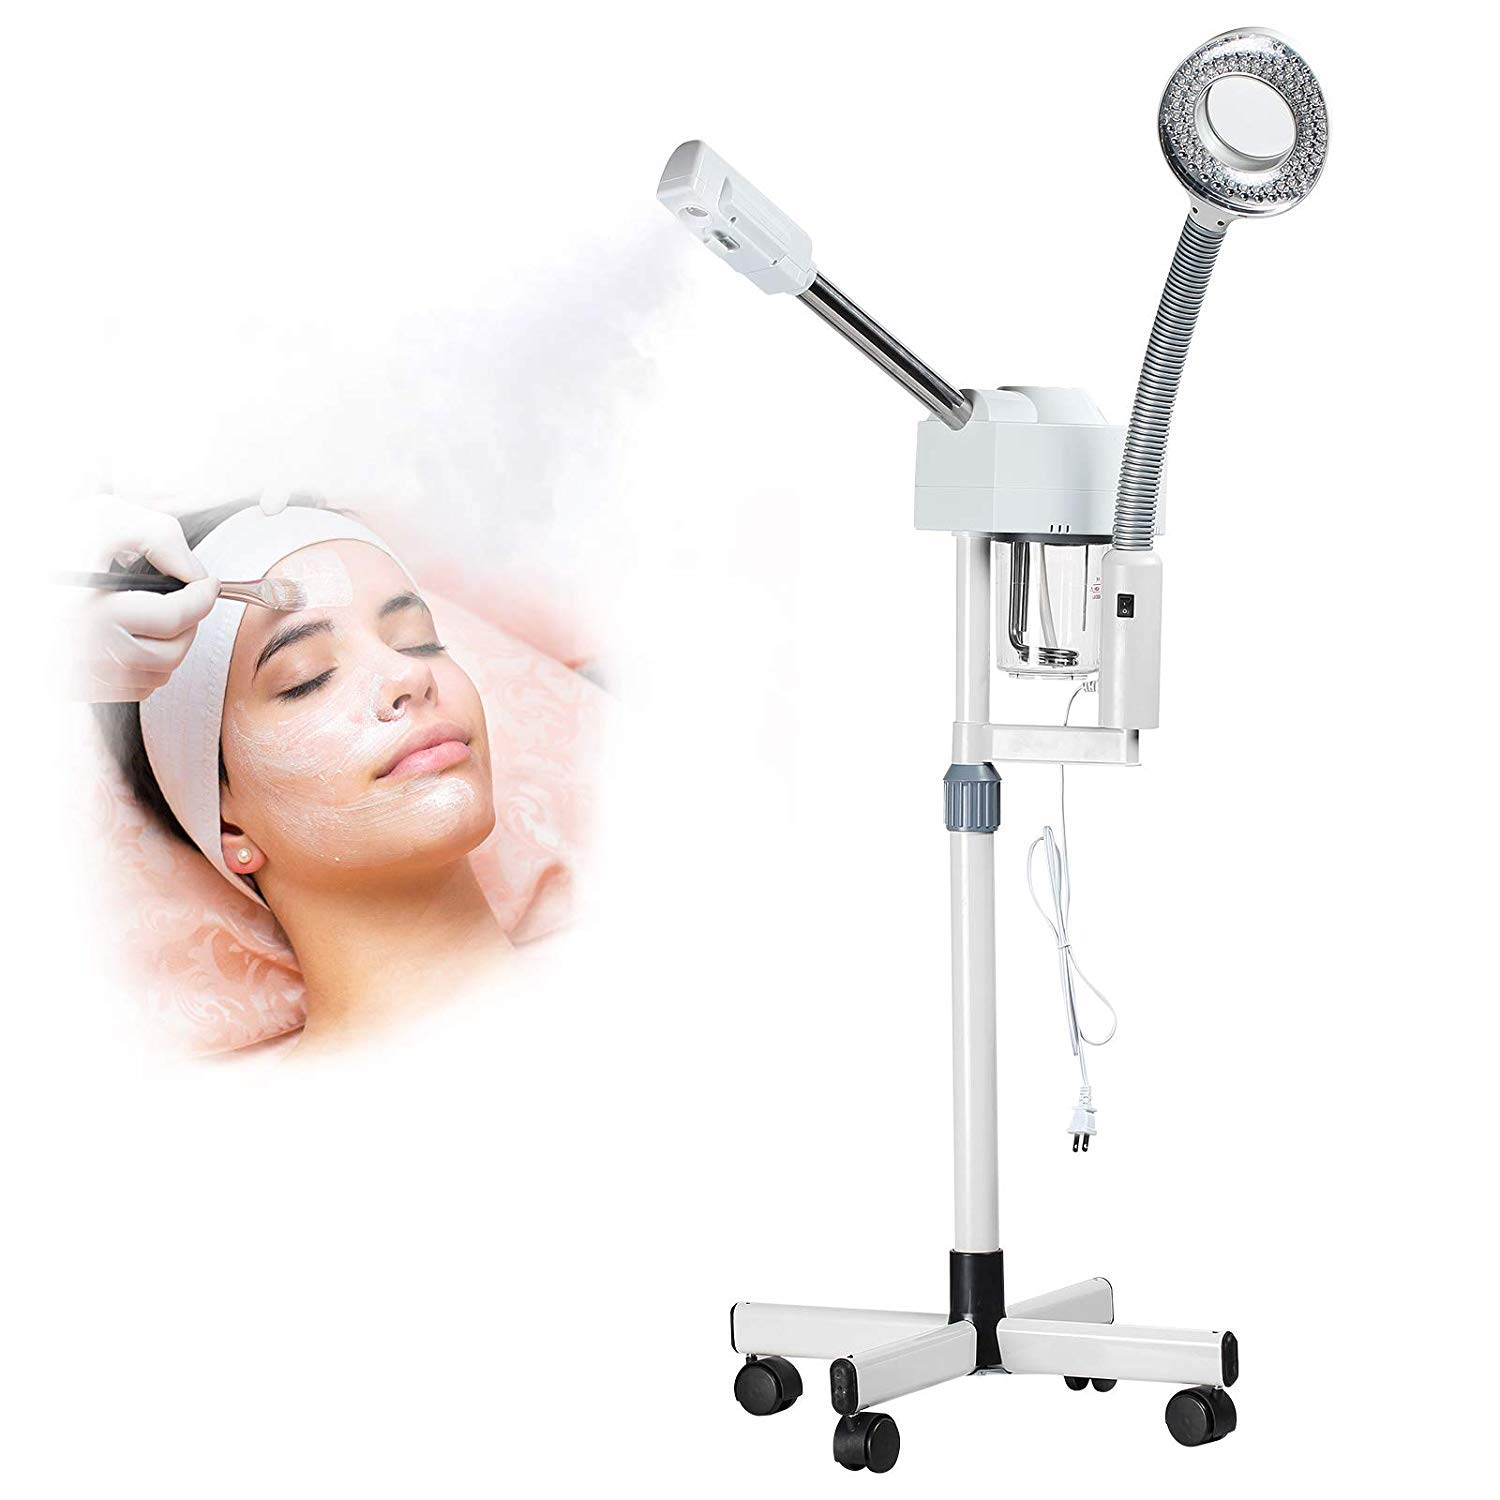 Dakavia 2 in 1 Aromatherapy Professional Ozone Facial Steamer with 5X Magnifying Lamp Multifunctional LED Light, Magnifier Hot Spray Facial Steamer, Spa Beauty Skin Care Equipment